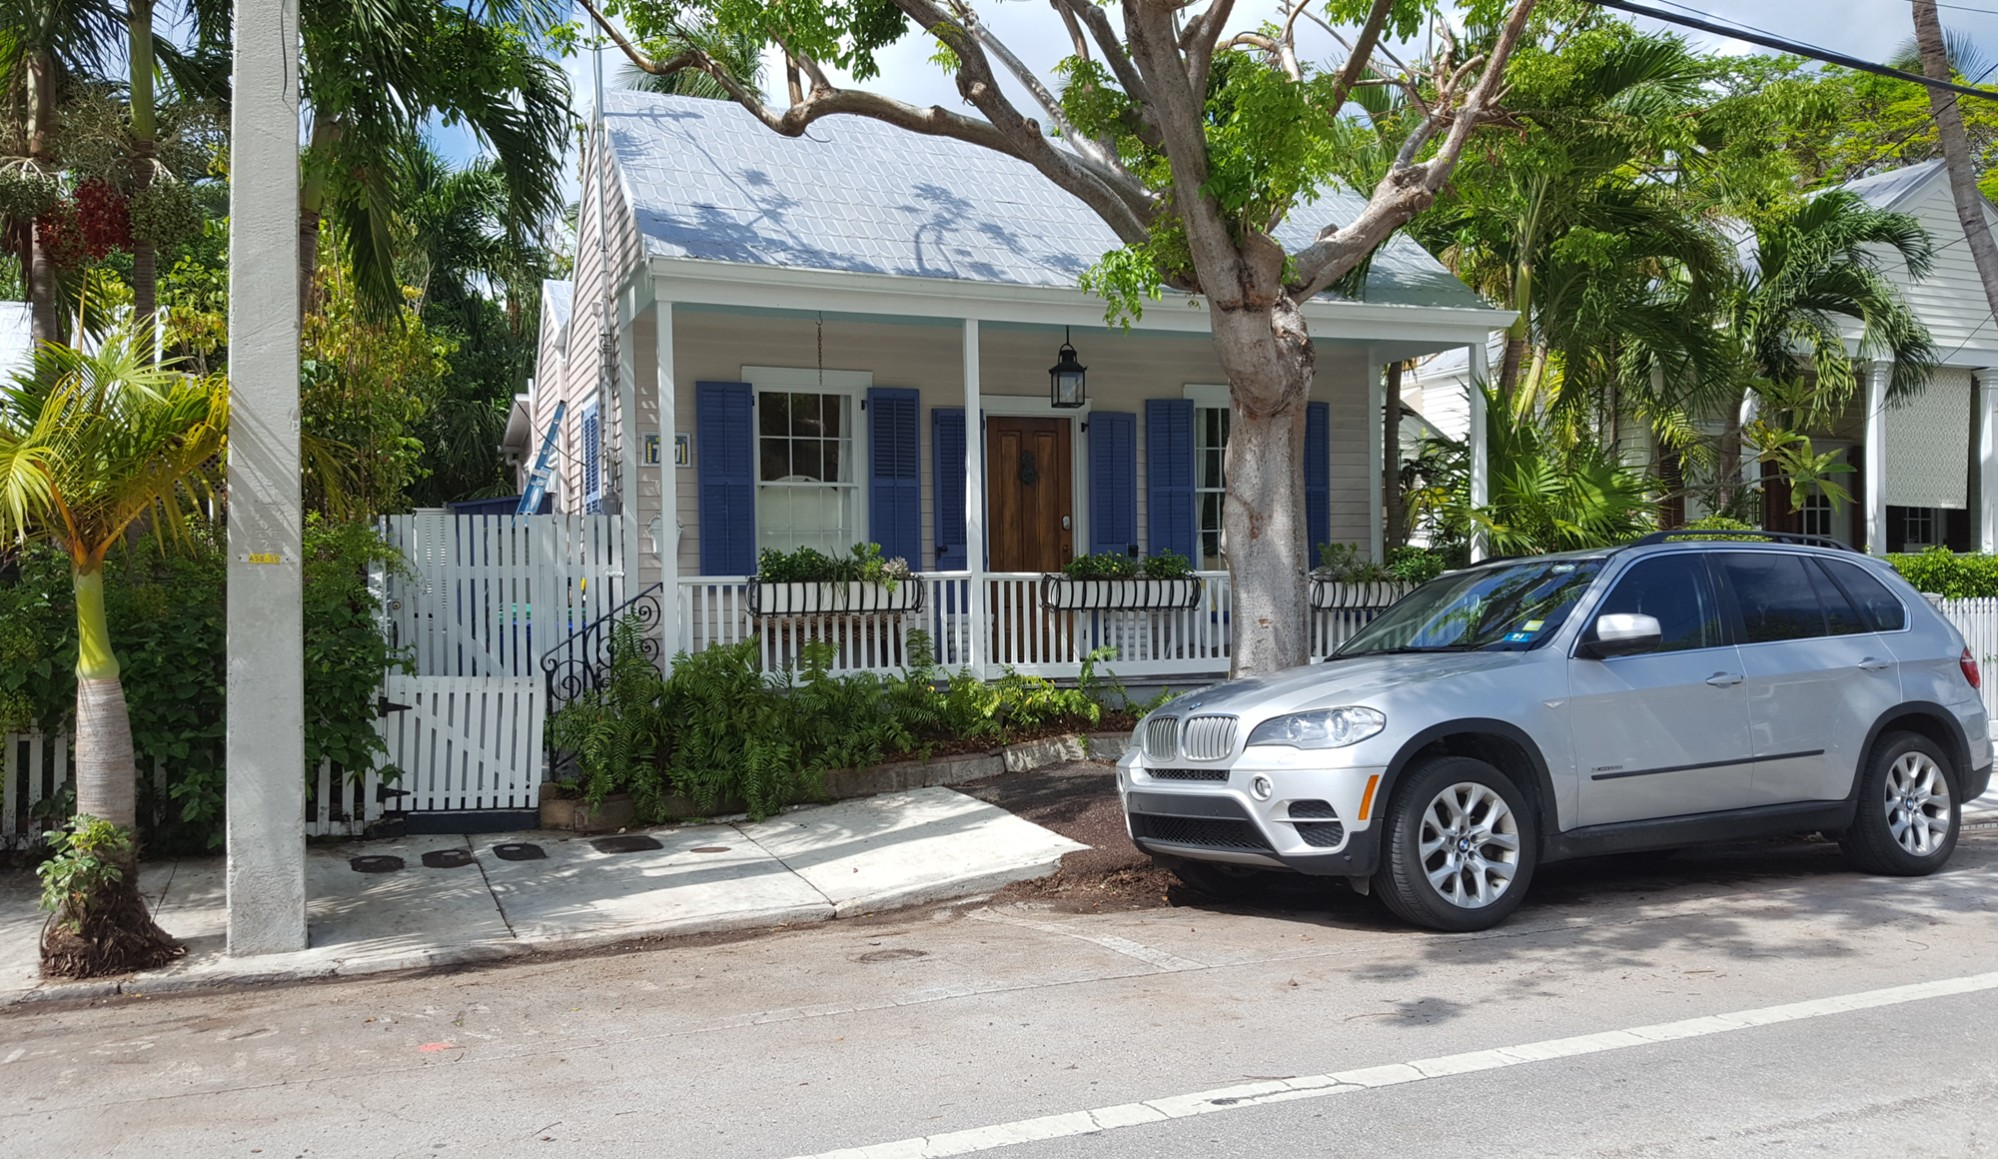 707 SOUTHARD ST, KEY WEST, FL